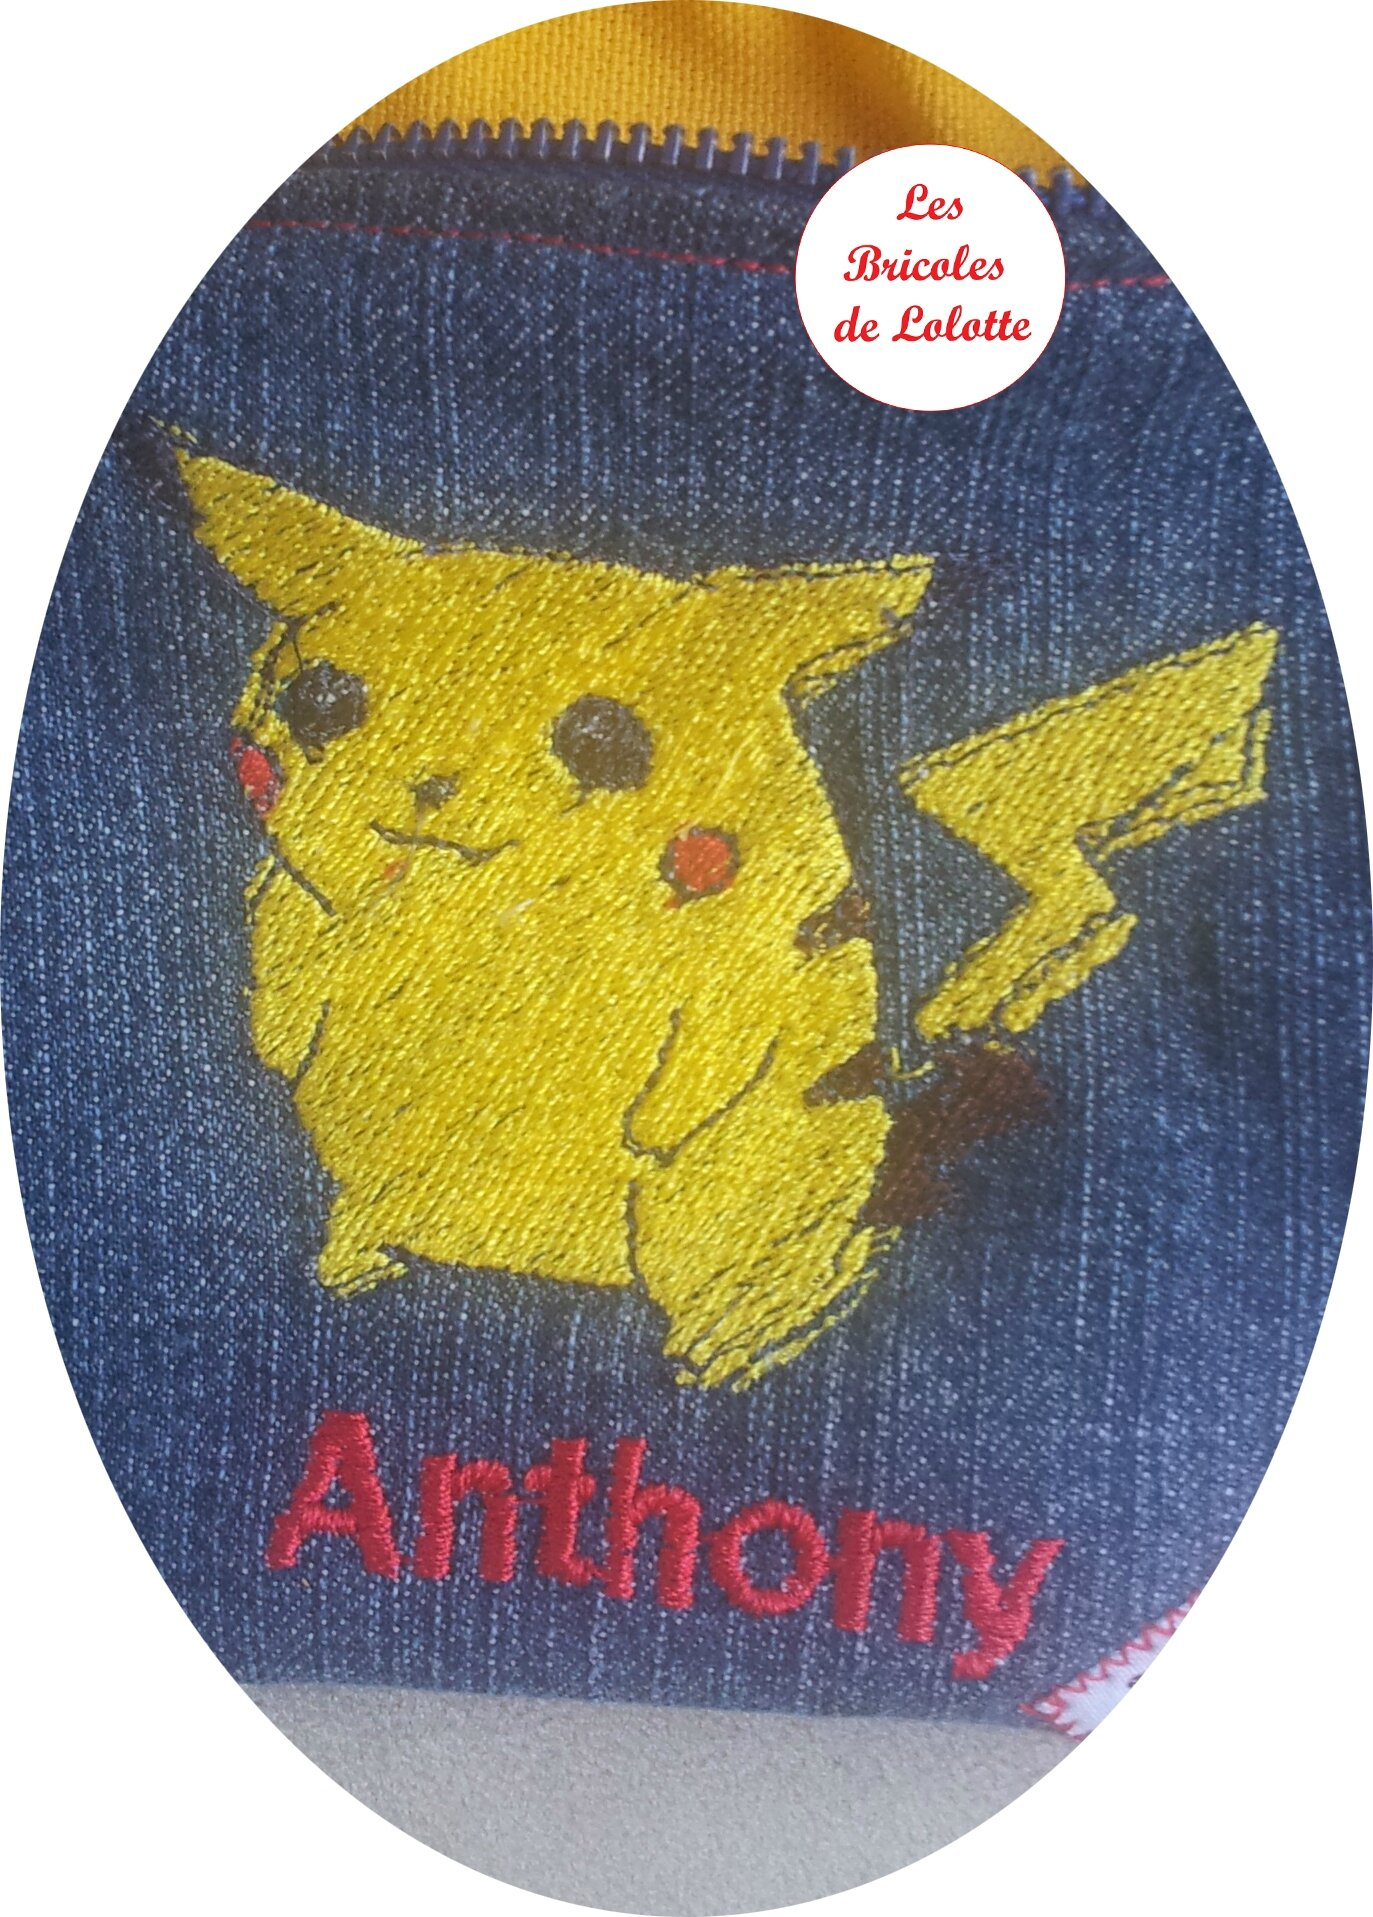 Anthony a 7 ans